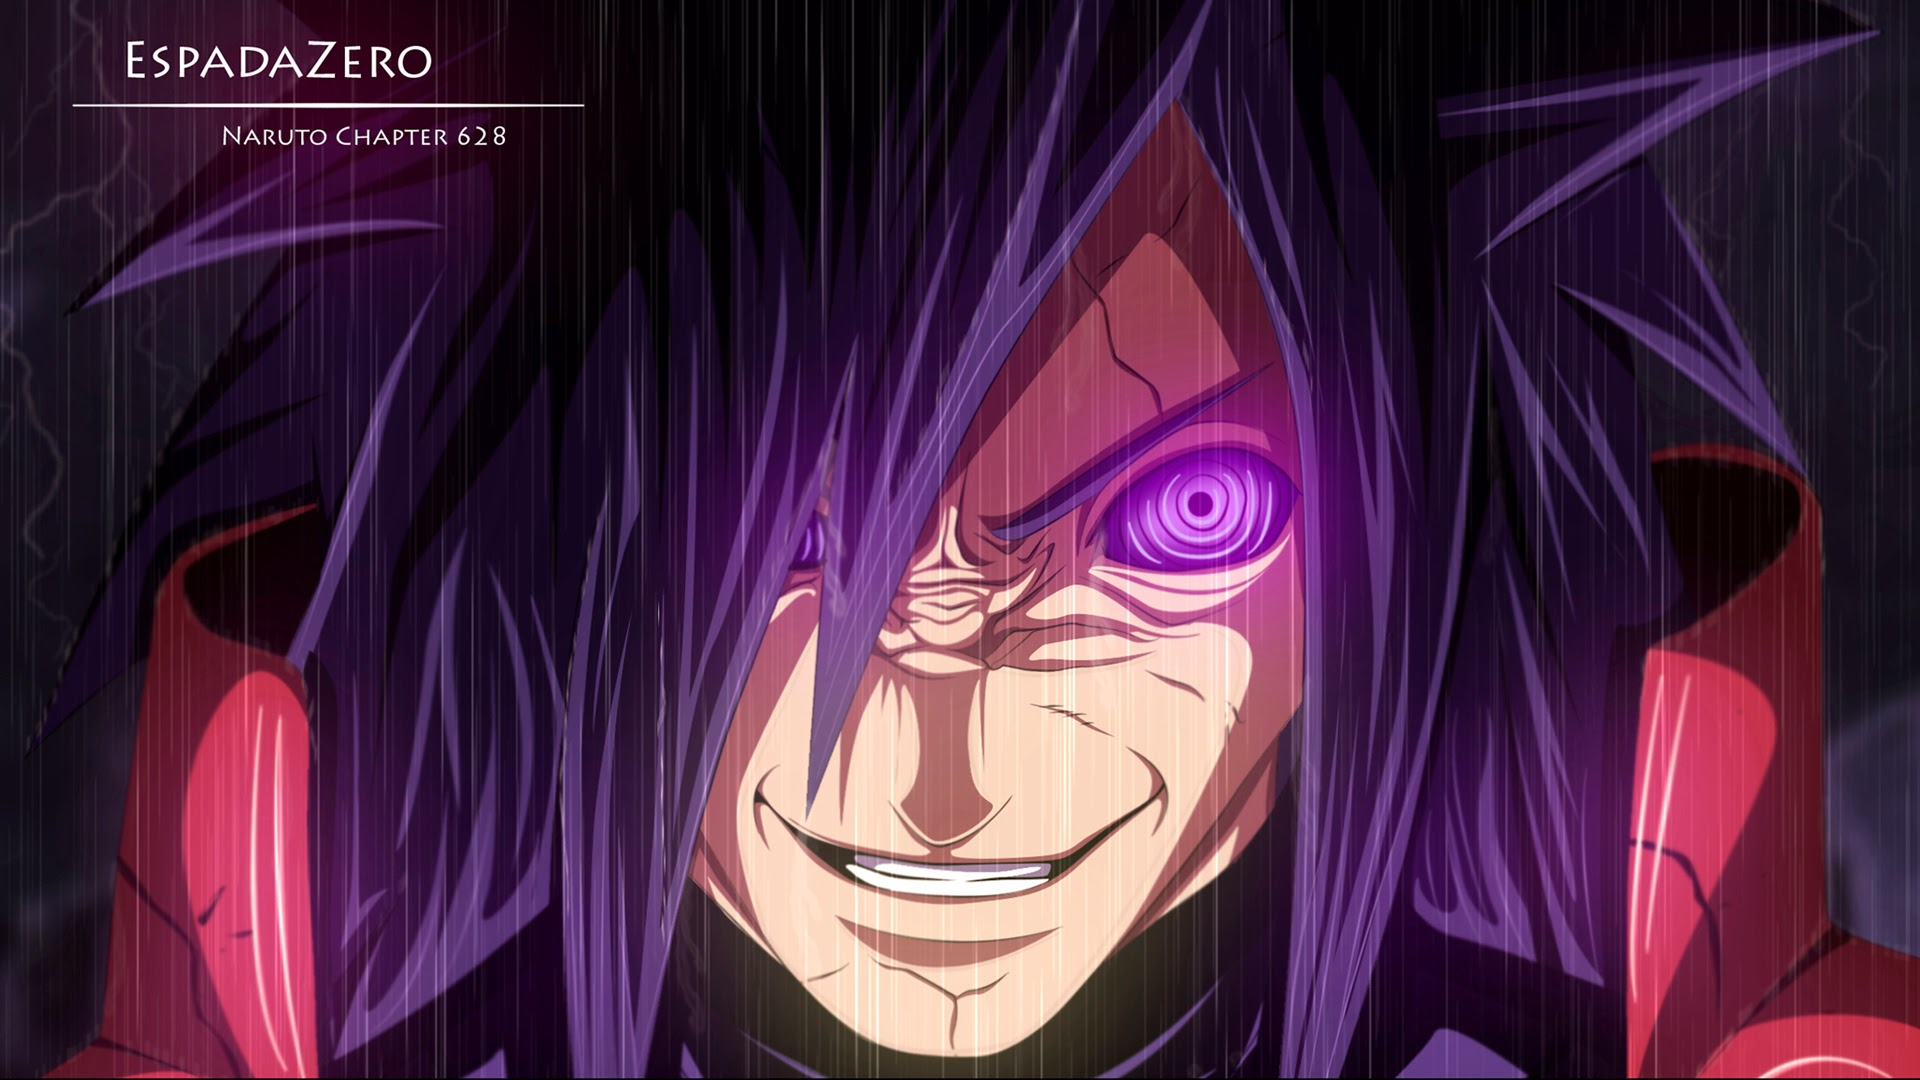 Madara Uchiha Rinnegan Eyes 76 Wallpaper HD 1920x1080